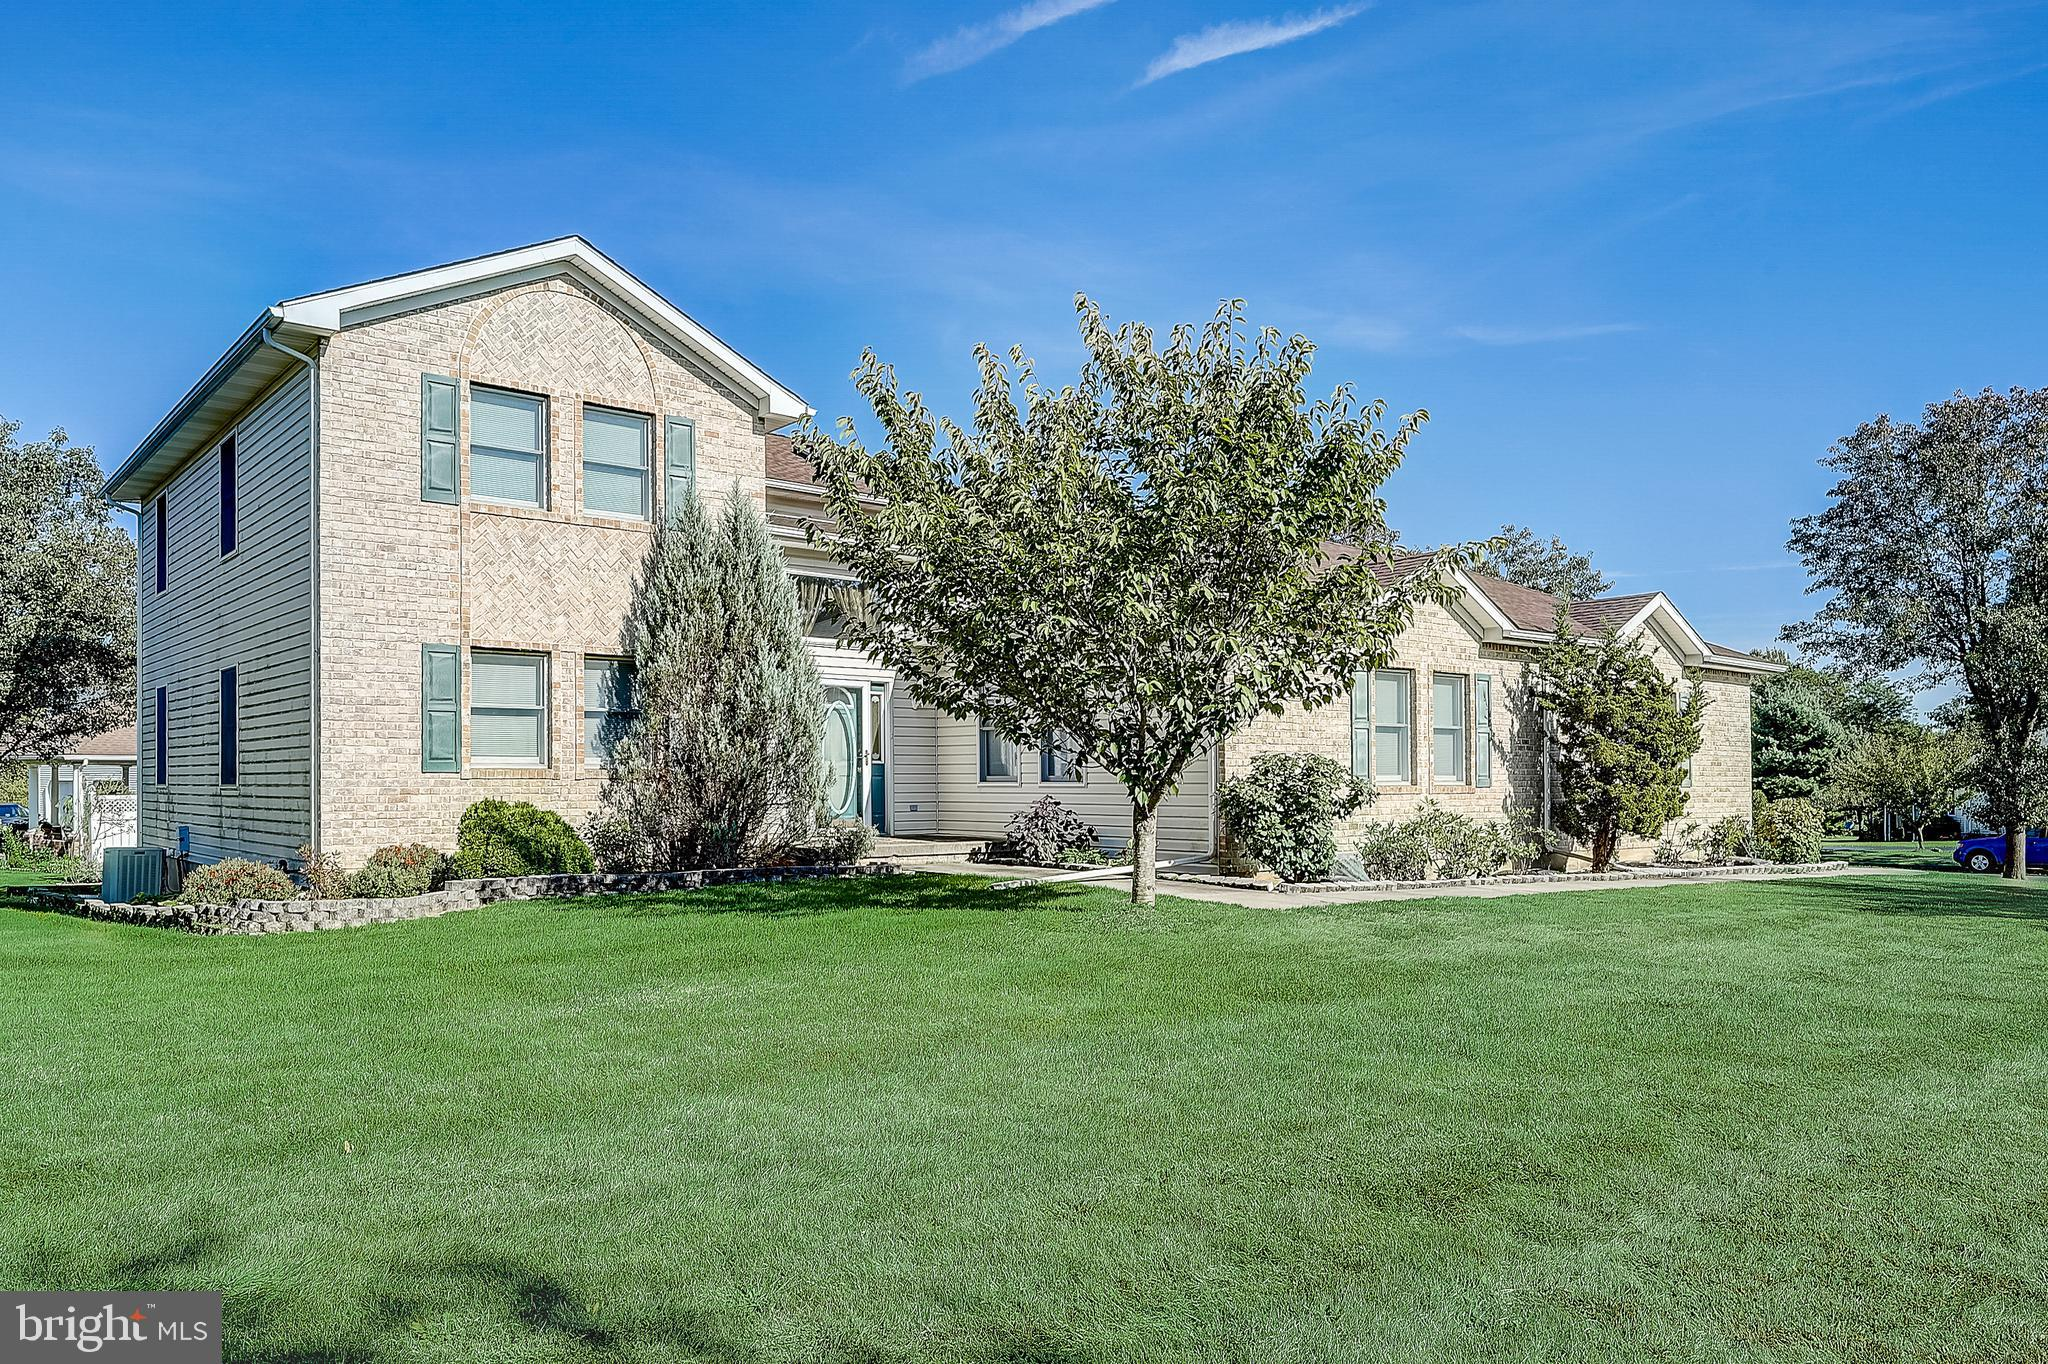 2465 COUNTRY TOP TRAIL, BETHLEHEM, PA 18020